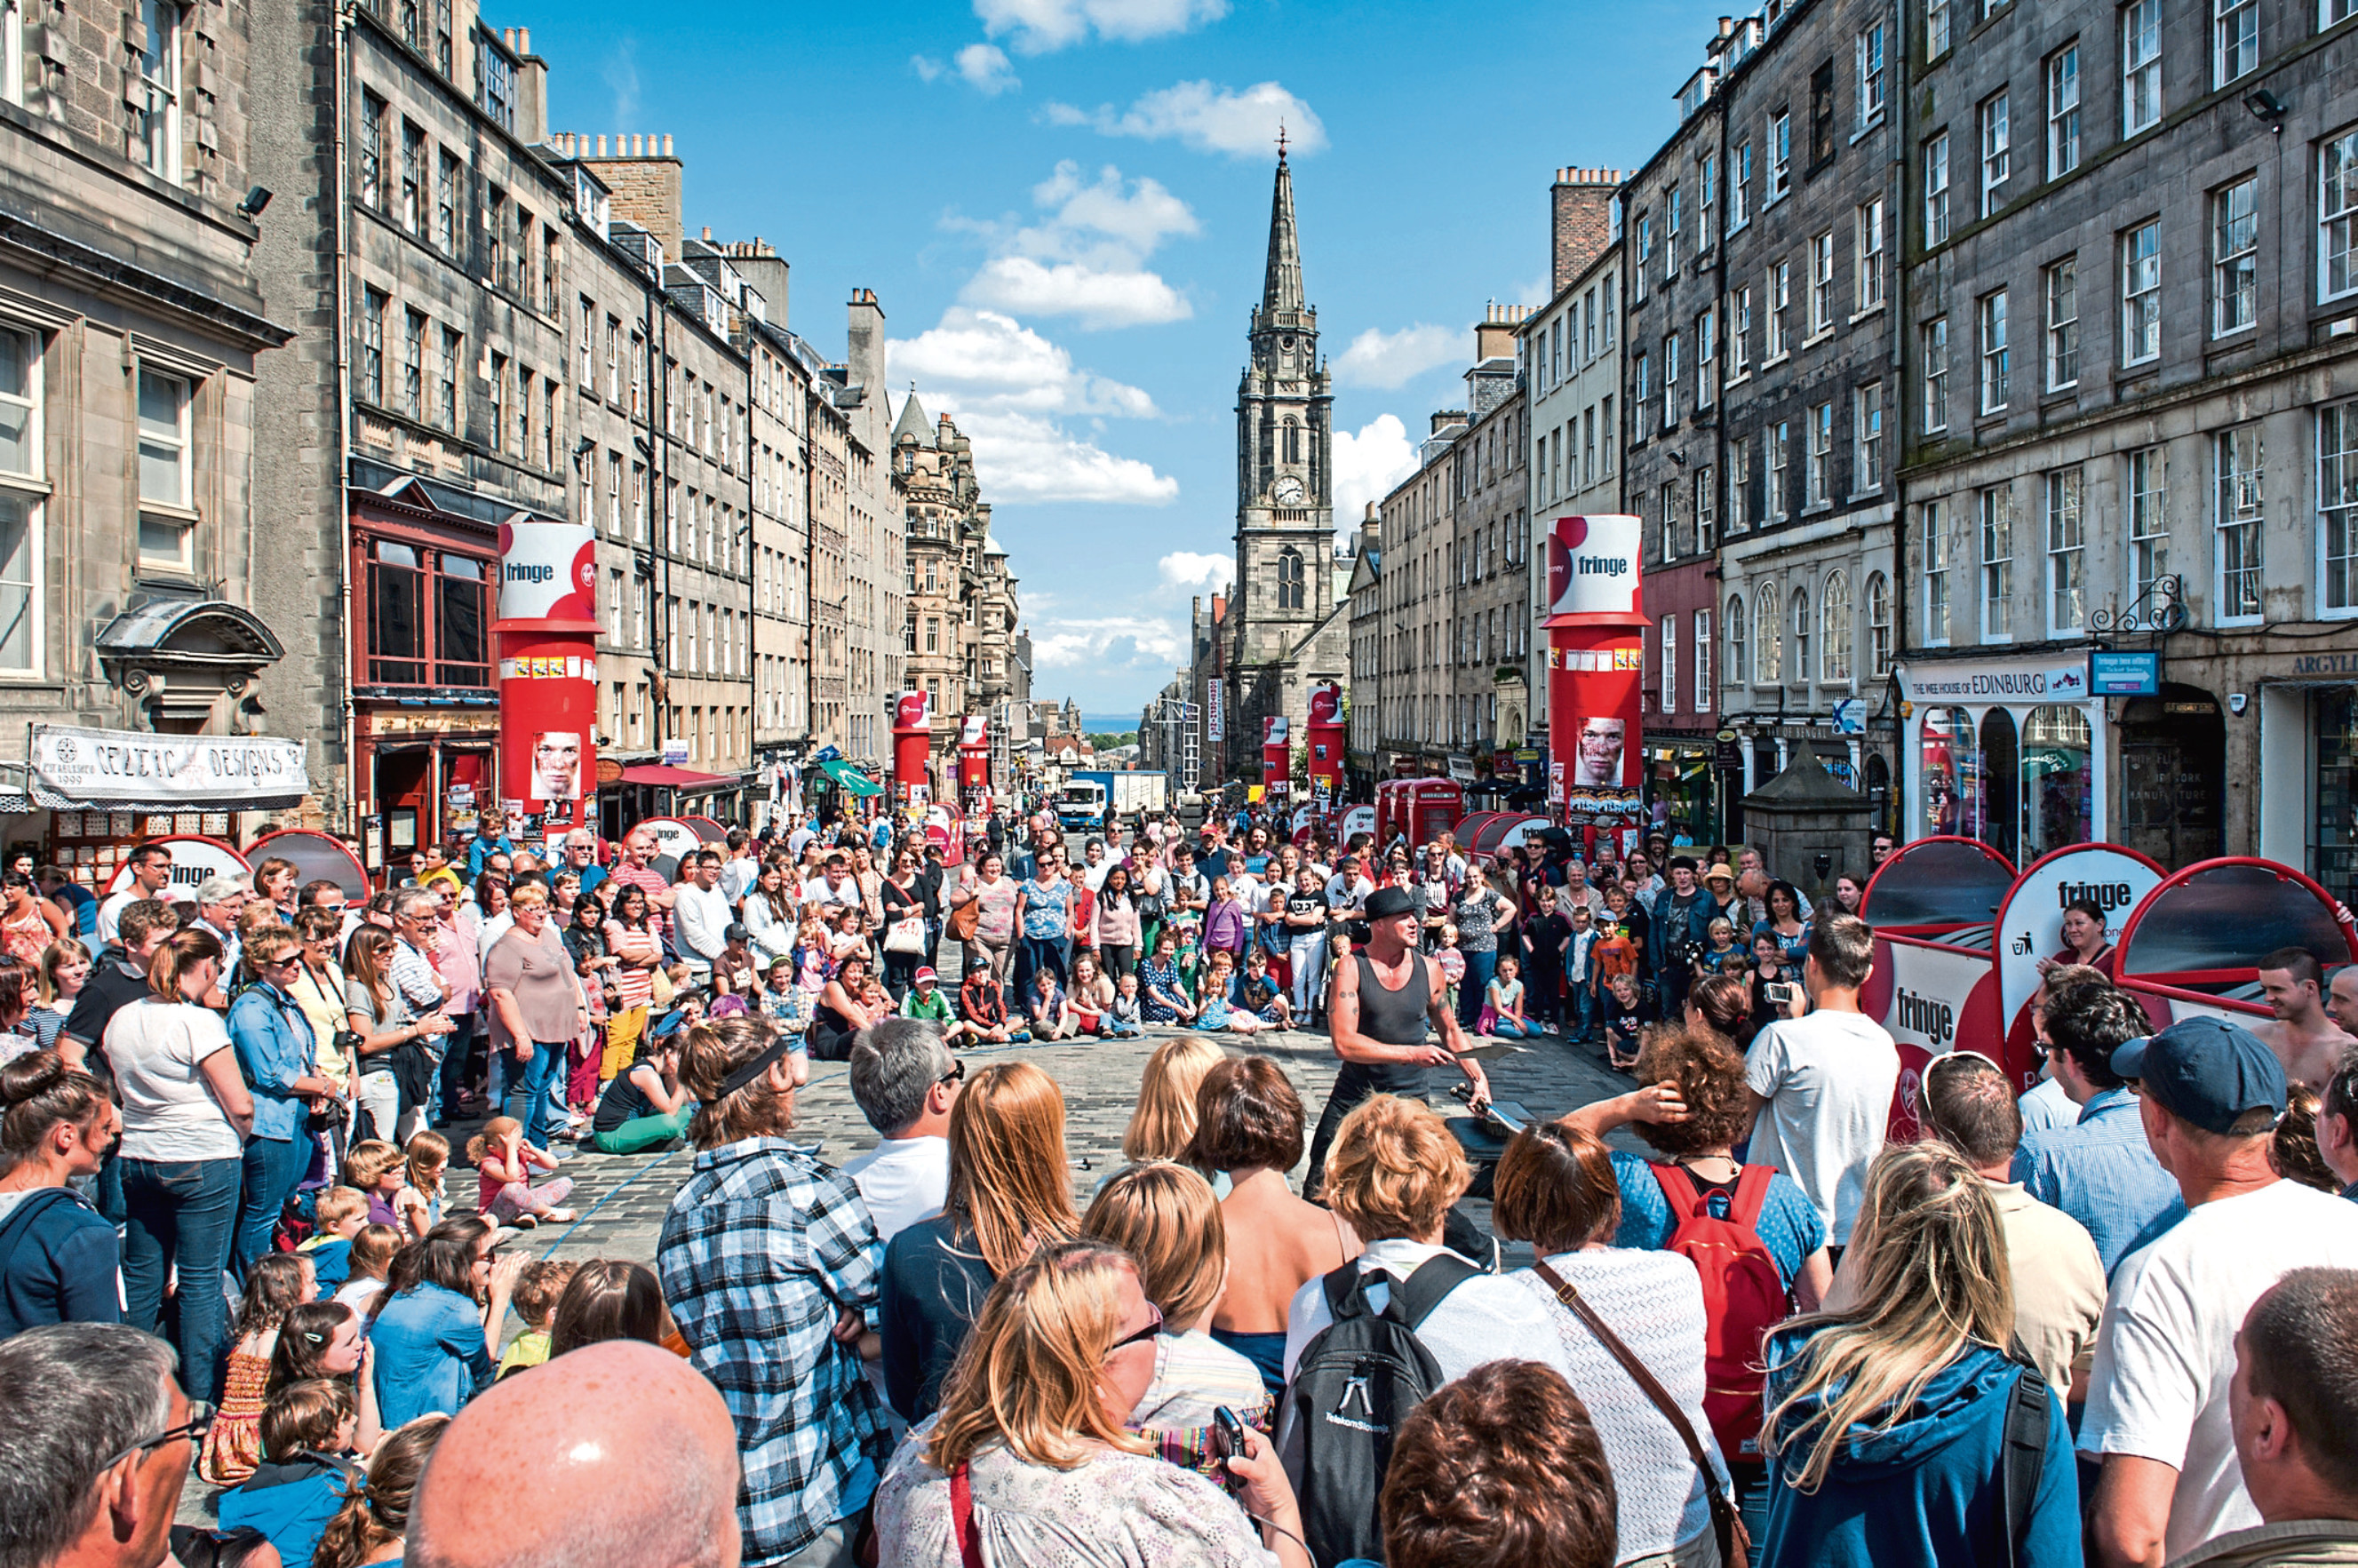 The Edinburgh Fringe Festival attracts tourists from around the globe every year